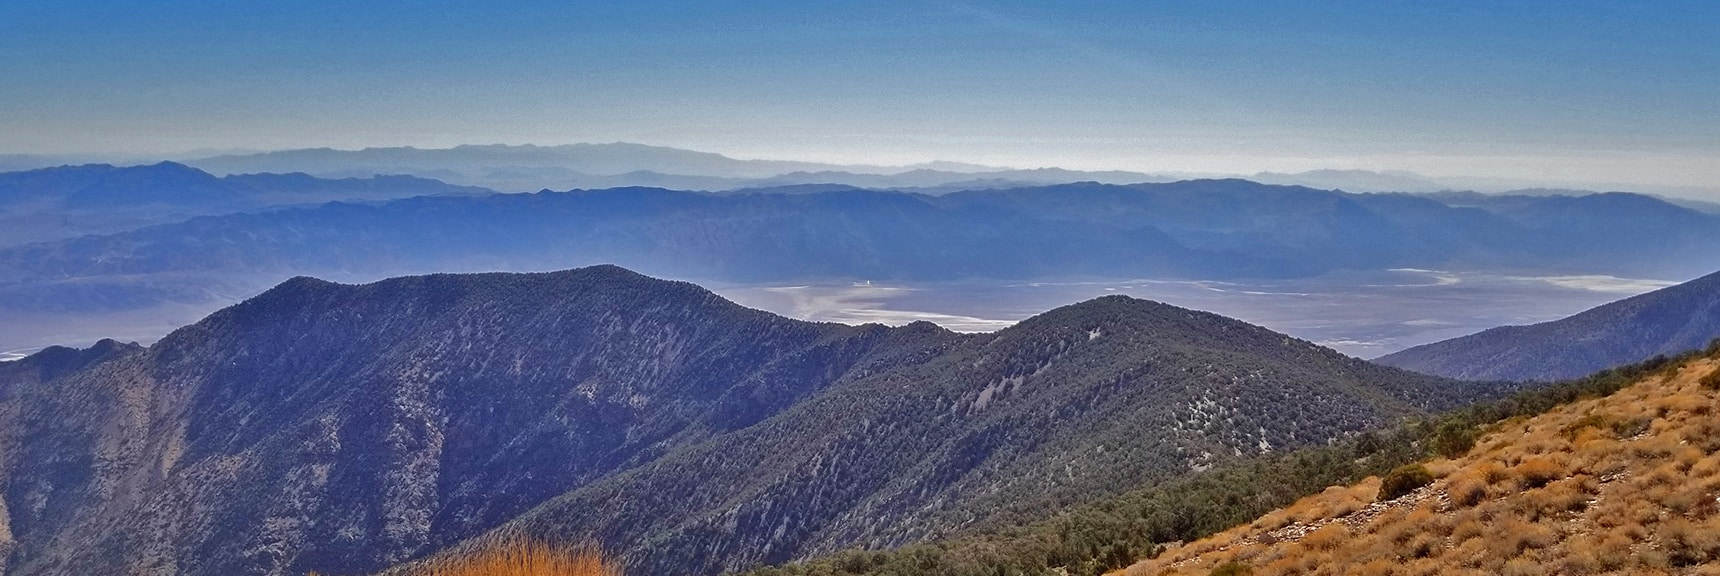 View Southeast Toward Death Valley Badwater and Mt. Charleston Wilderness   Wildrose Peak   Panamint Mountain Range   Death Valley National Park, California